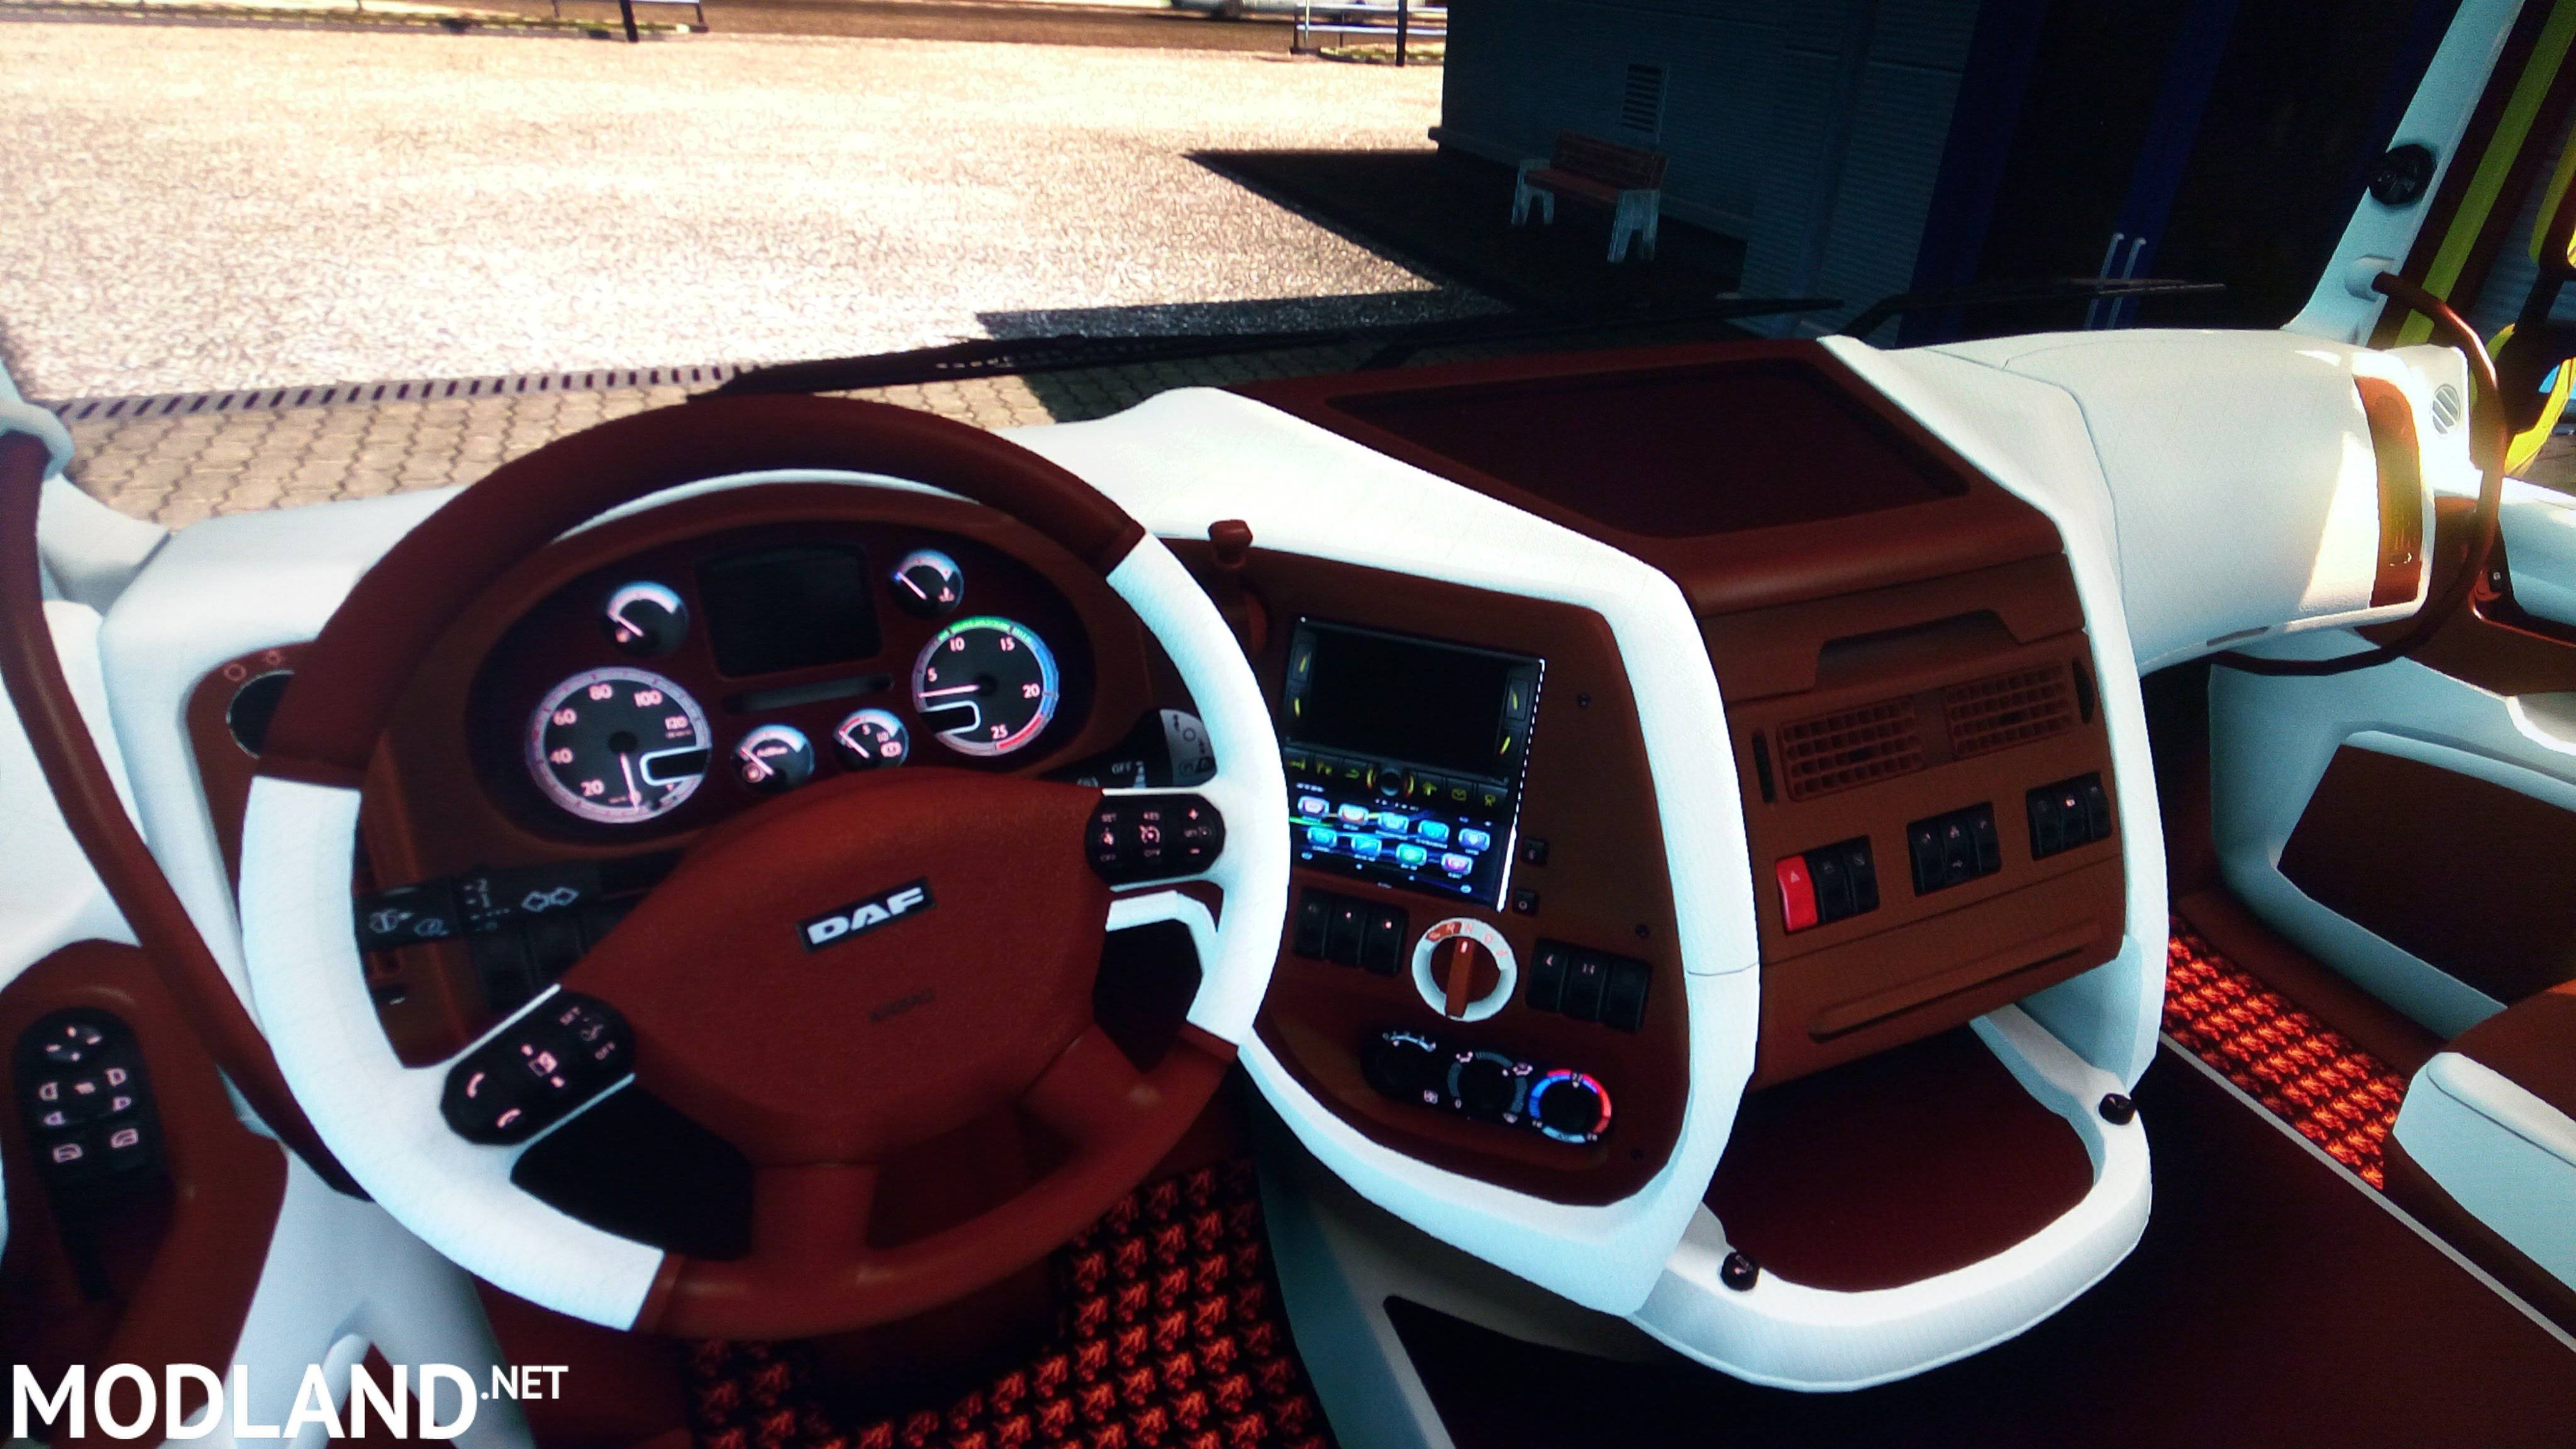 DAF XF 105 Super Space Brown/White interior-1.30 mod for ETS 2